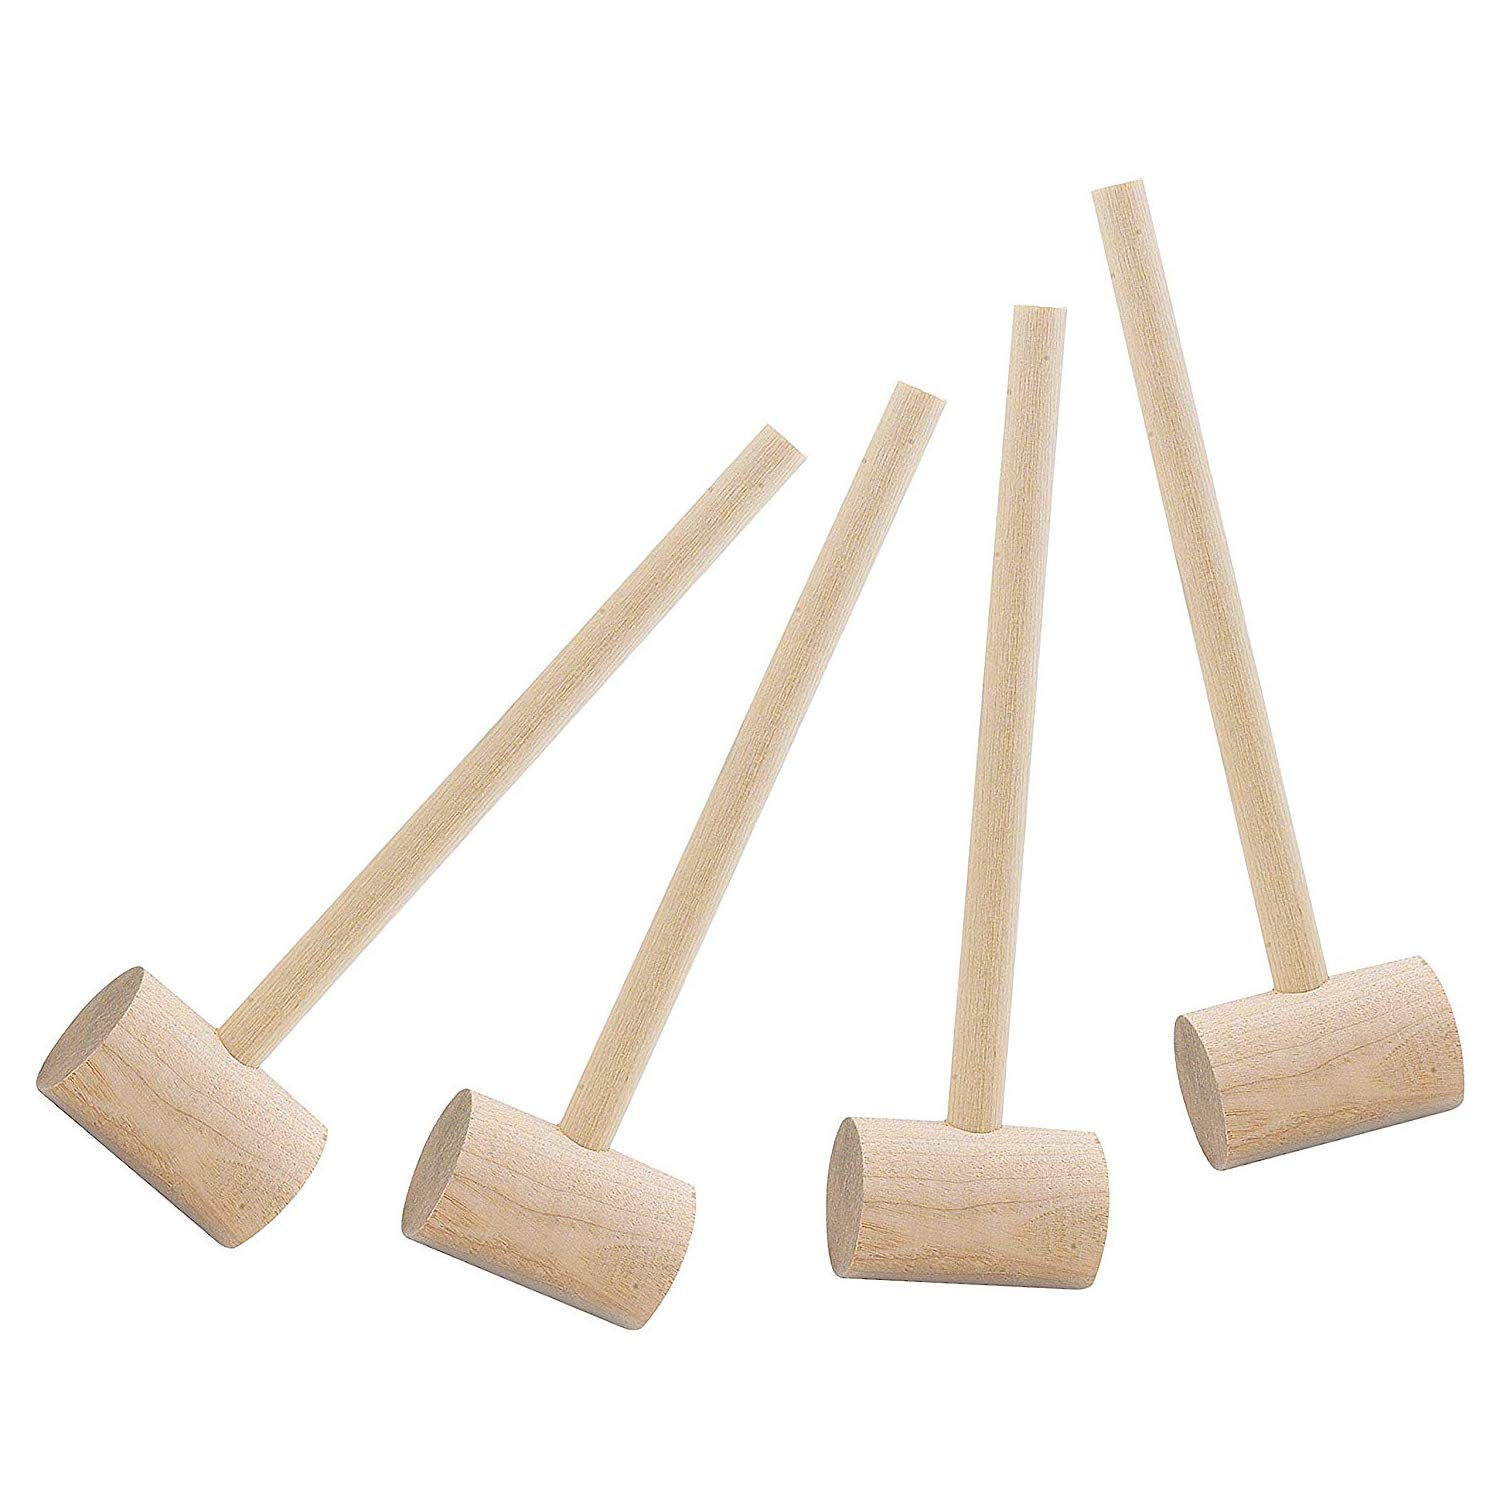 KAIMENG Crab Mallets Natural Hardwood Set of 4 (20CM)